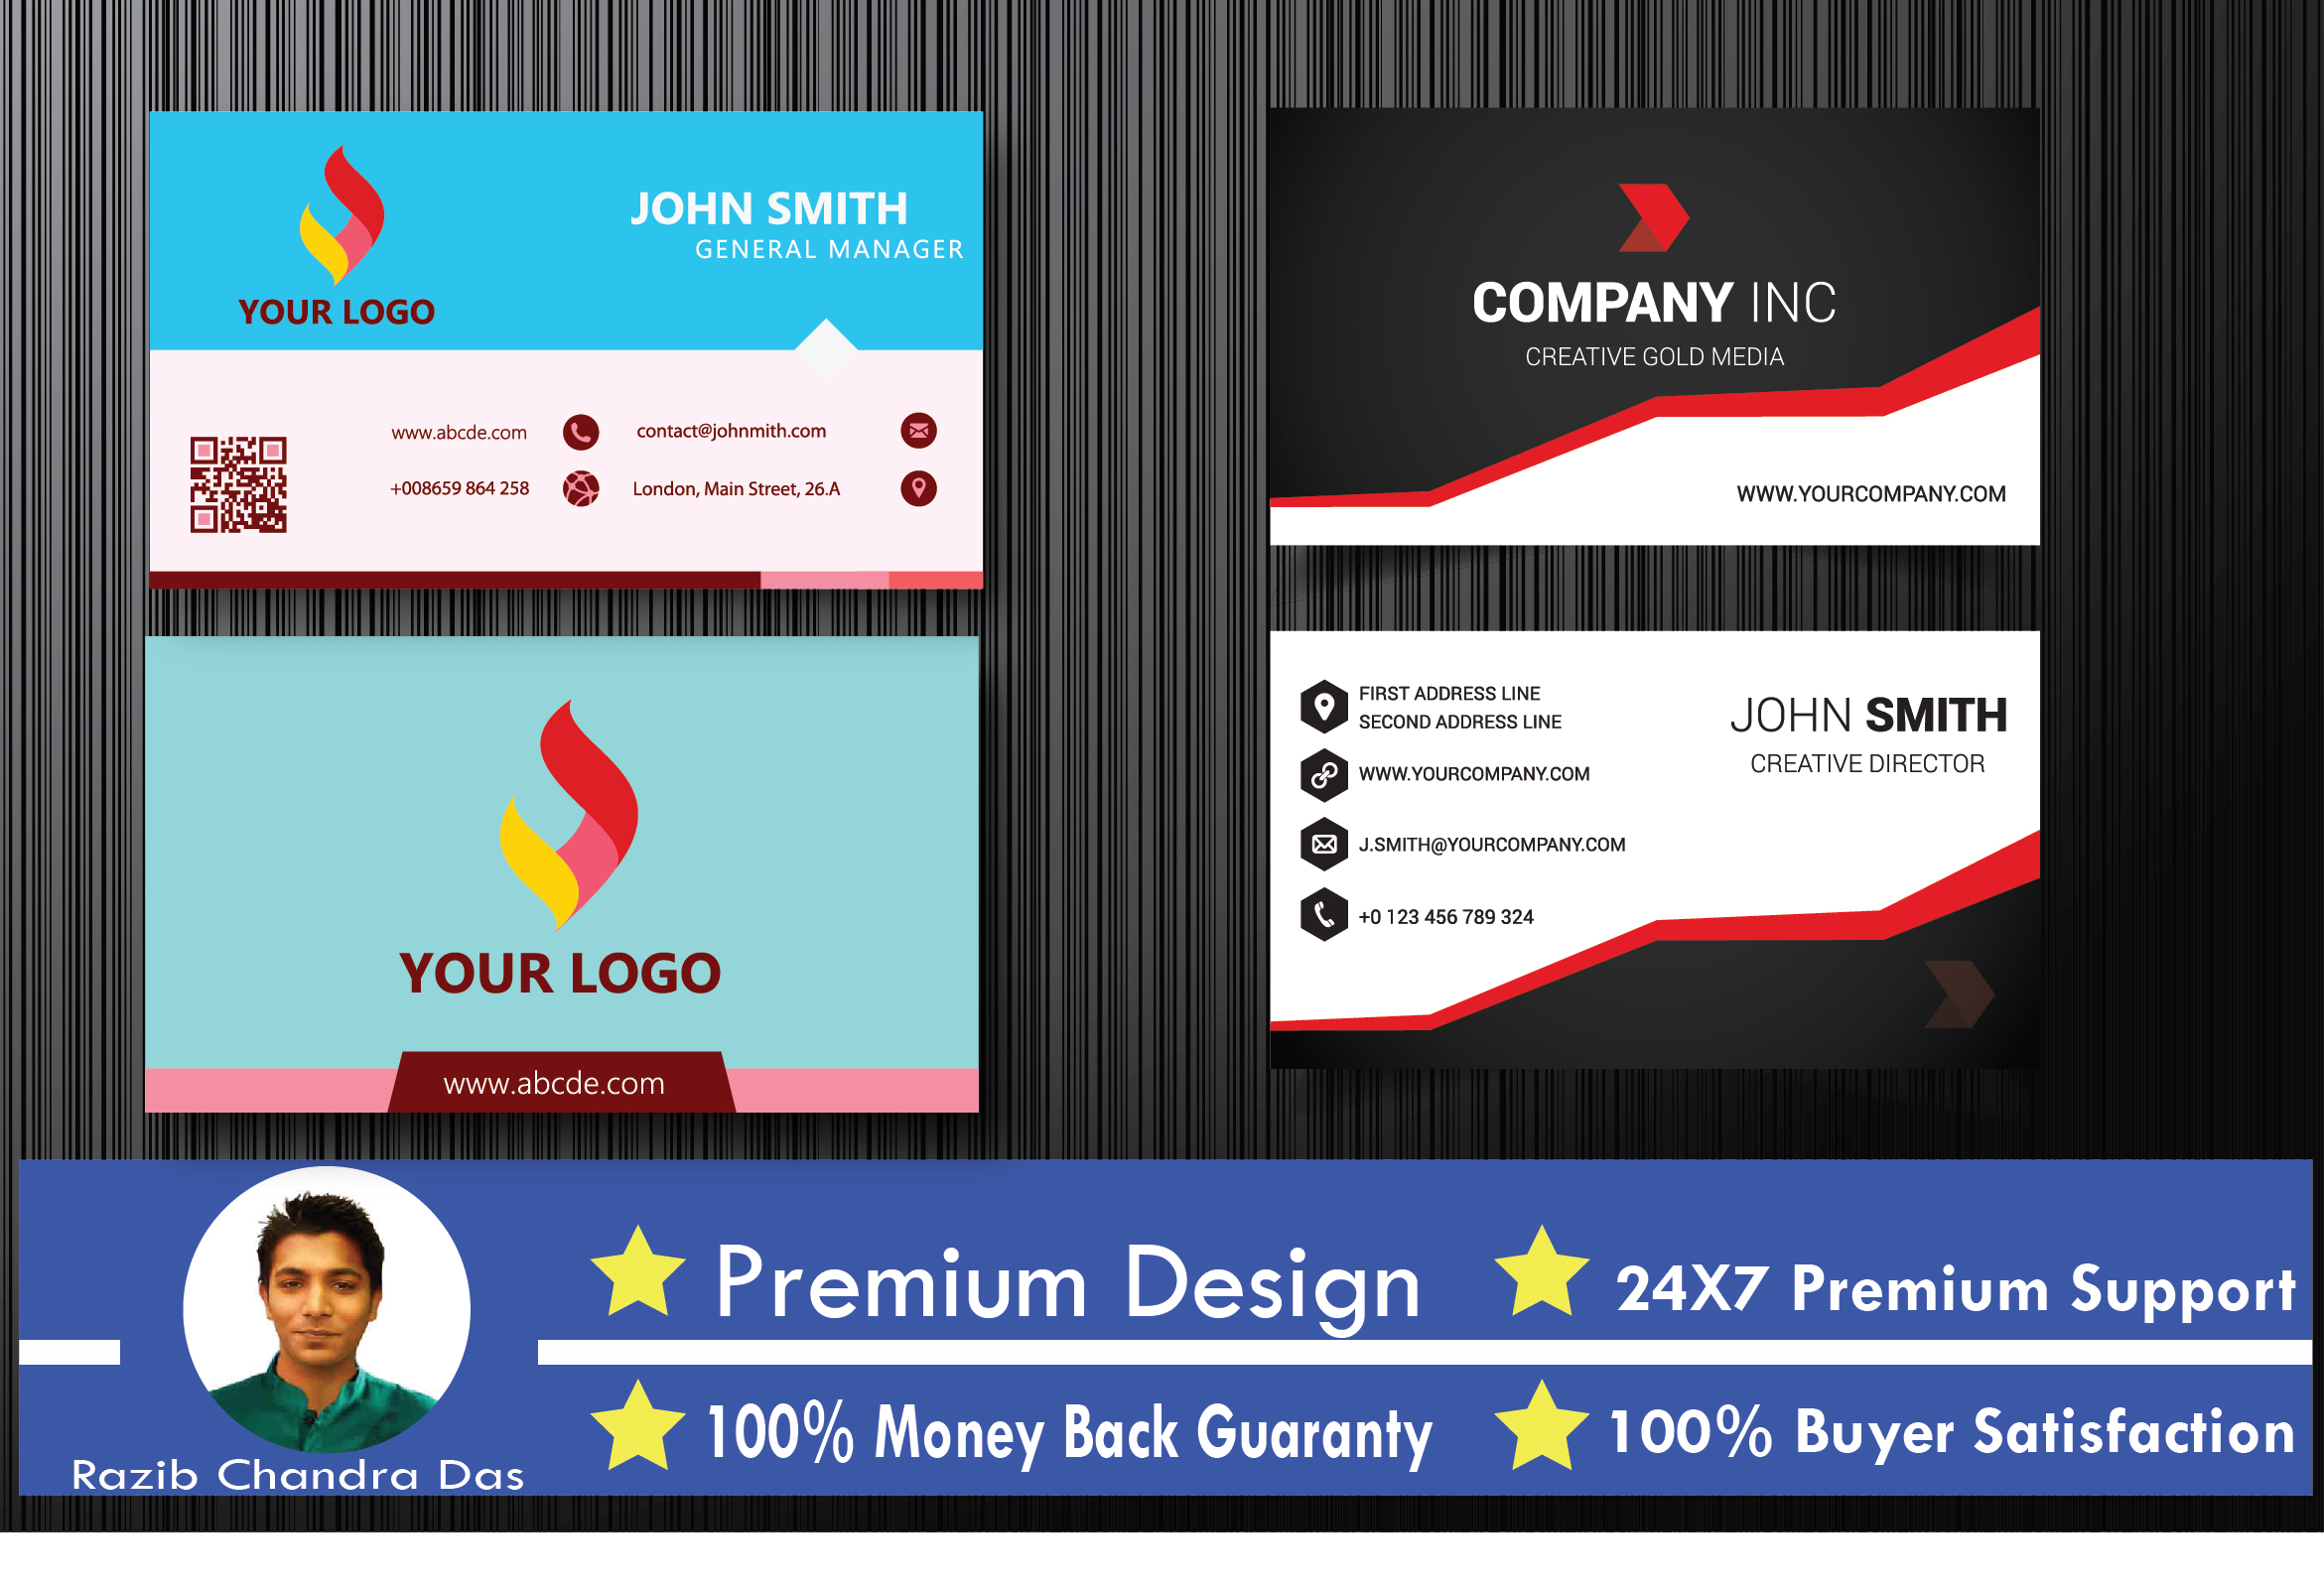 i will design double sided business card in 24 hours for $5